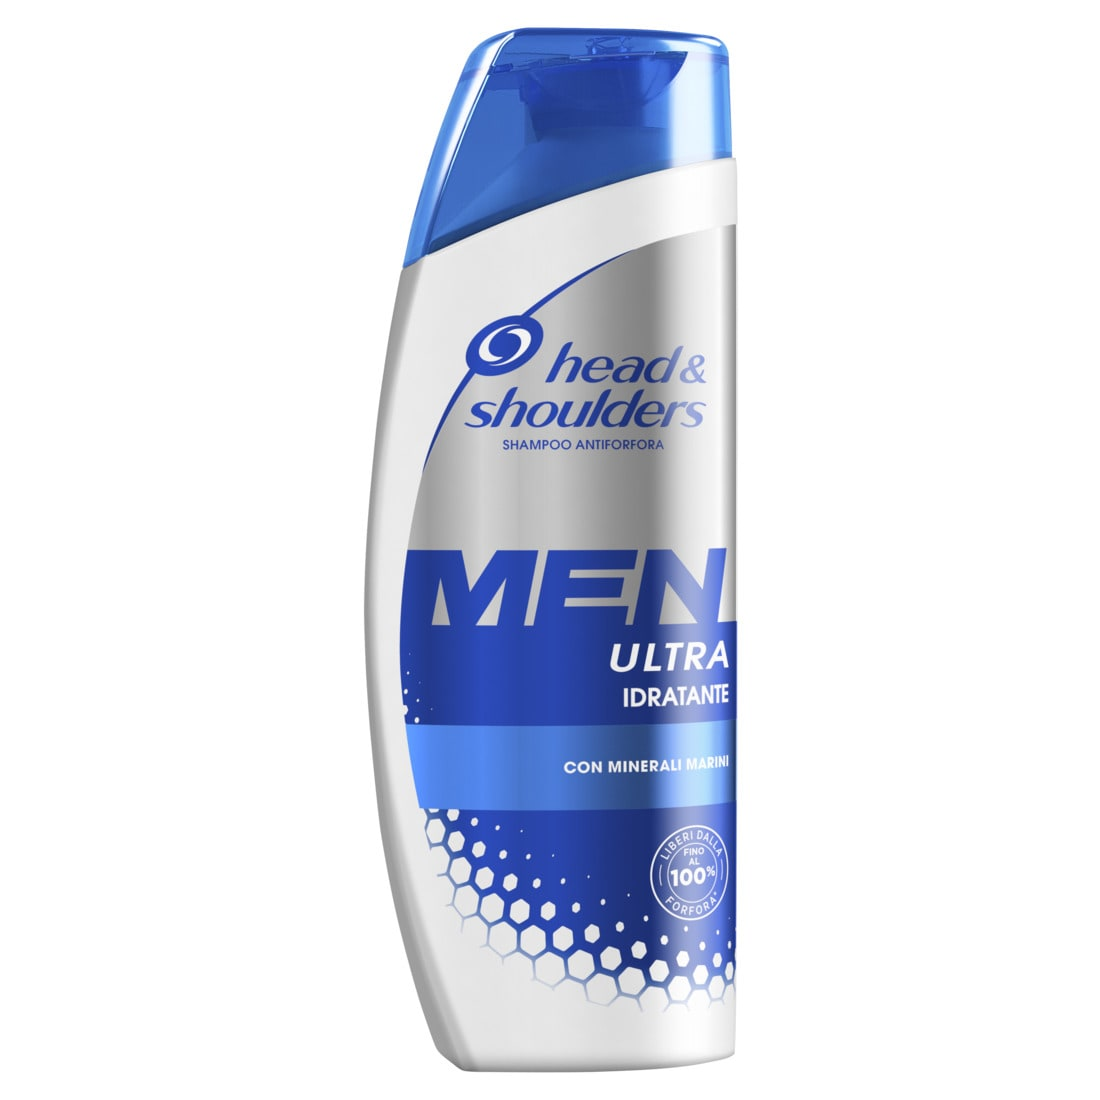 Men Ultra Idratante Shampoo